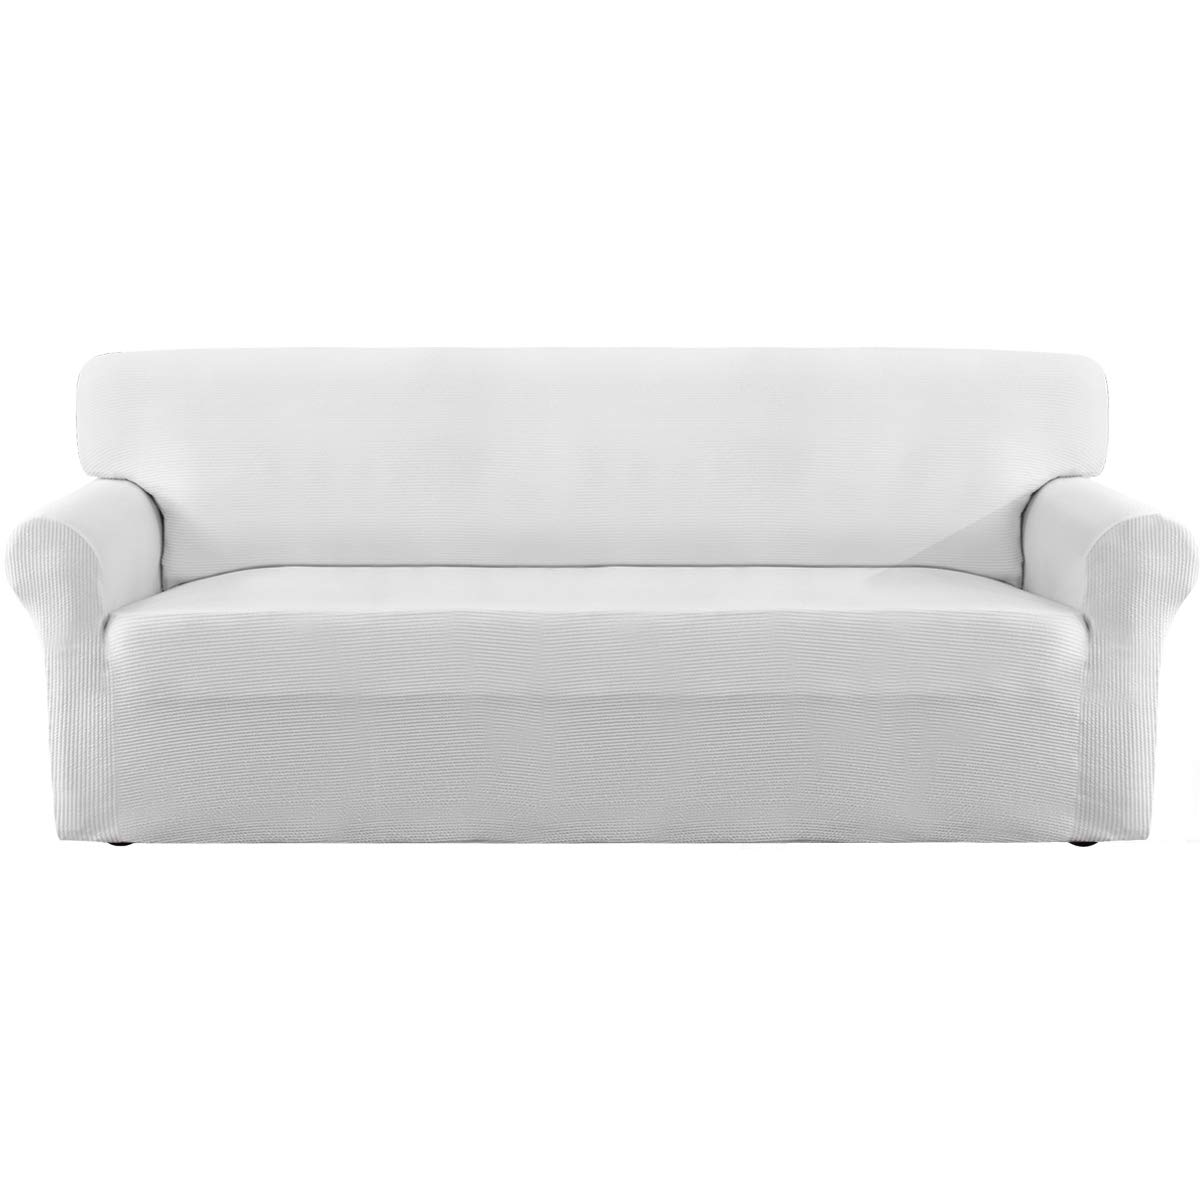 Elastic Thicken Soft Micro Suede Sofa Couch Cover Slipcover Furniture Protector Home & Garden